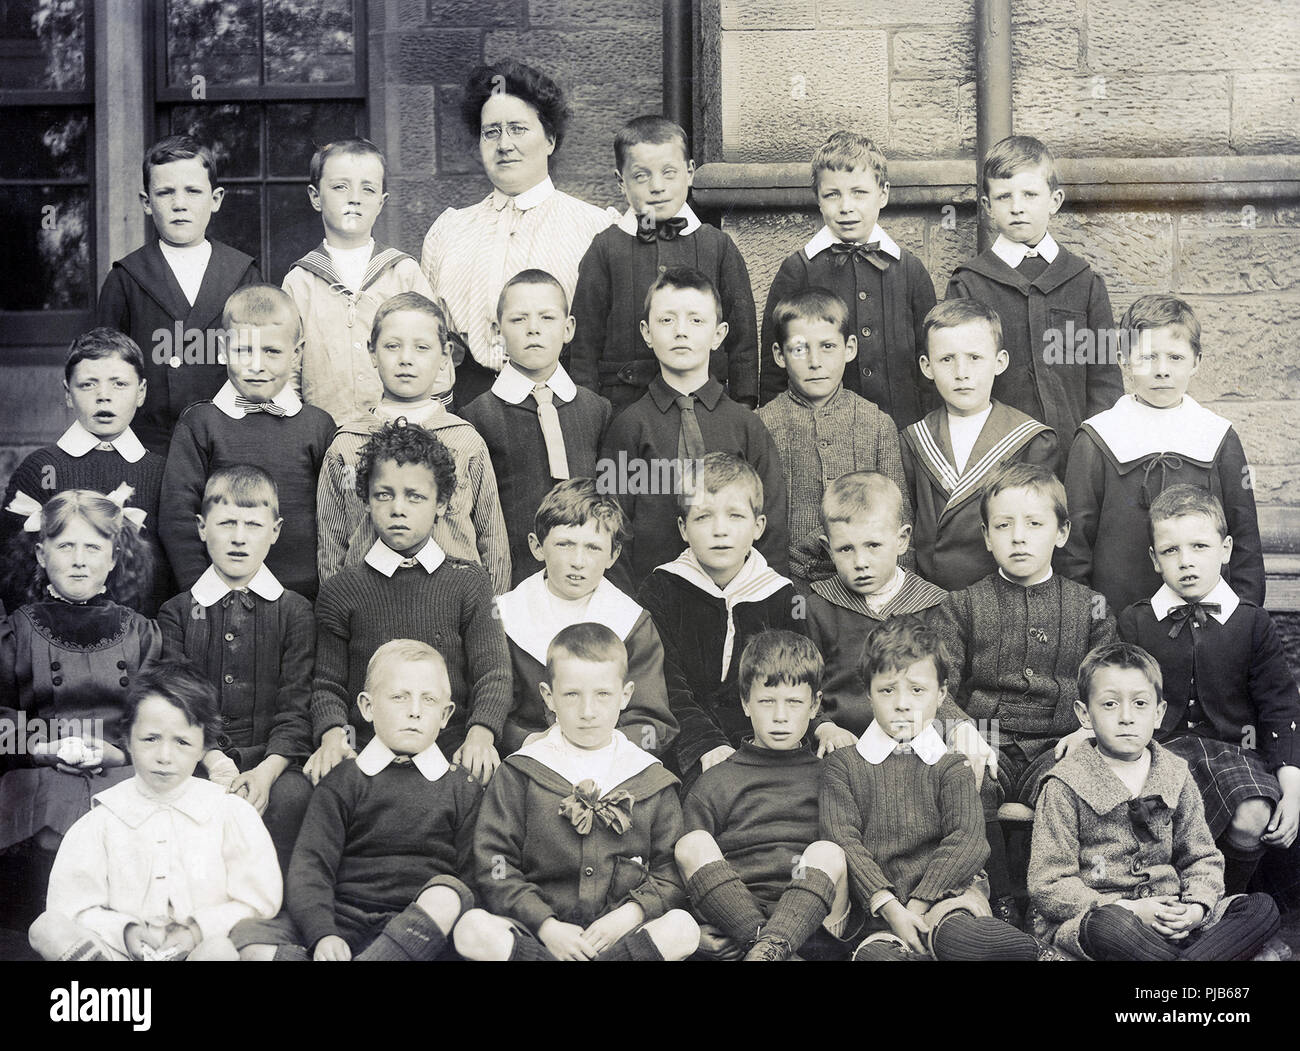 A Victorian or Edwardian class photo of Glasgow school children and their teacher. - Stock Image